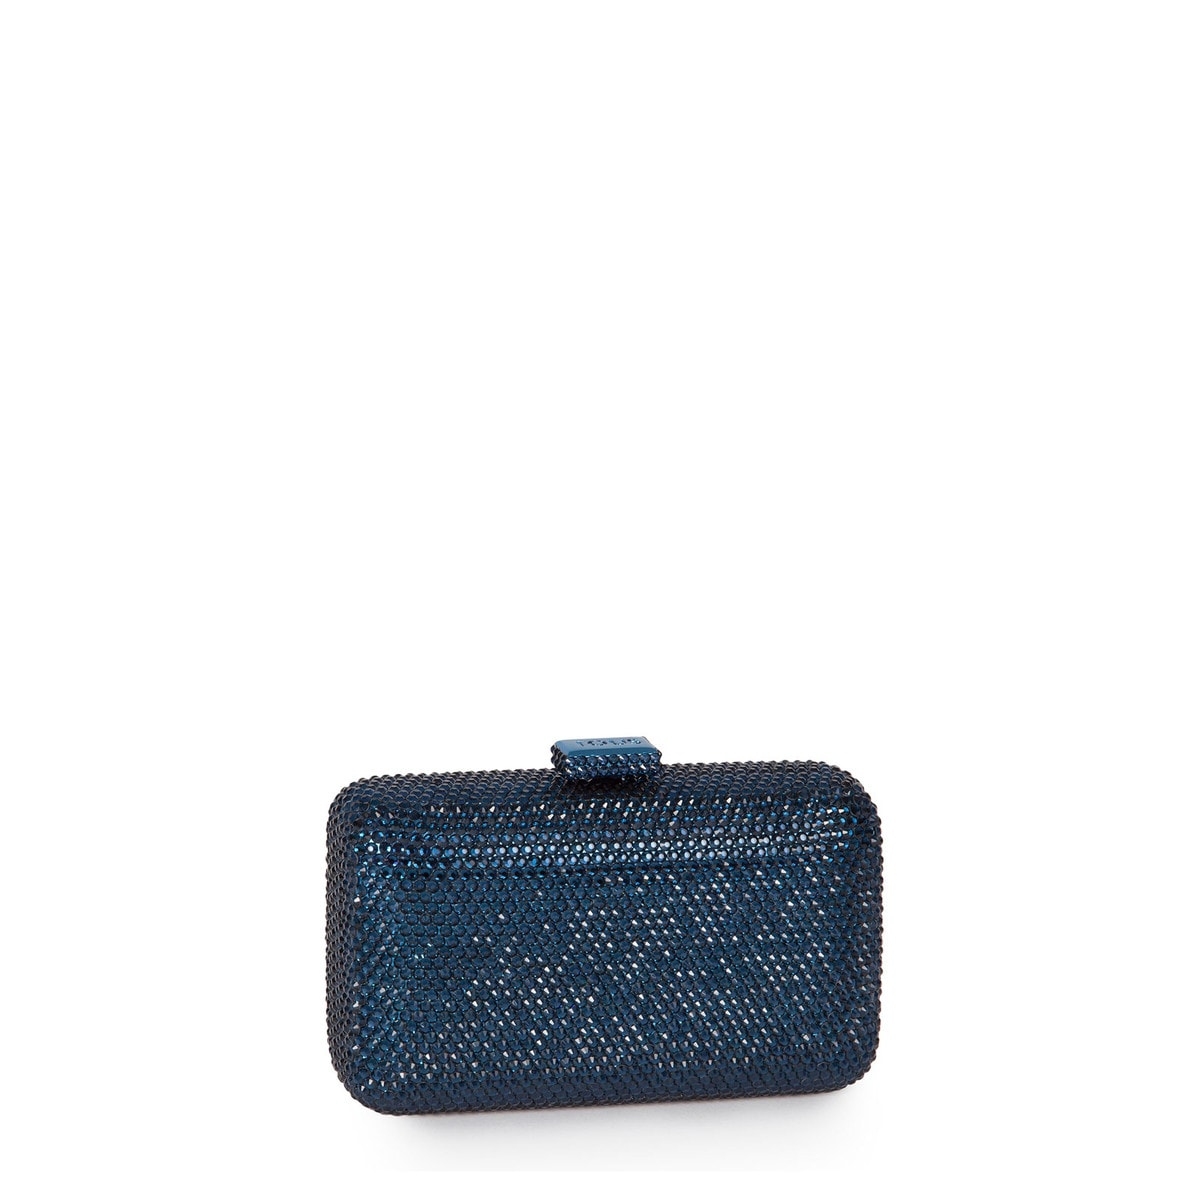 Clutch Marilin en color azul